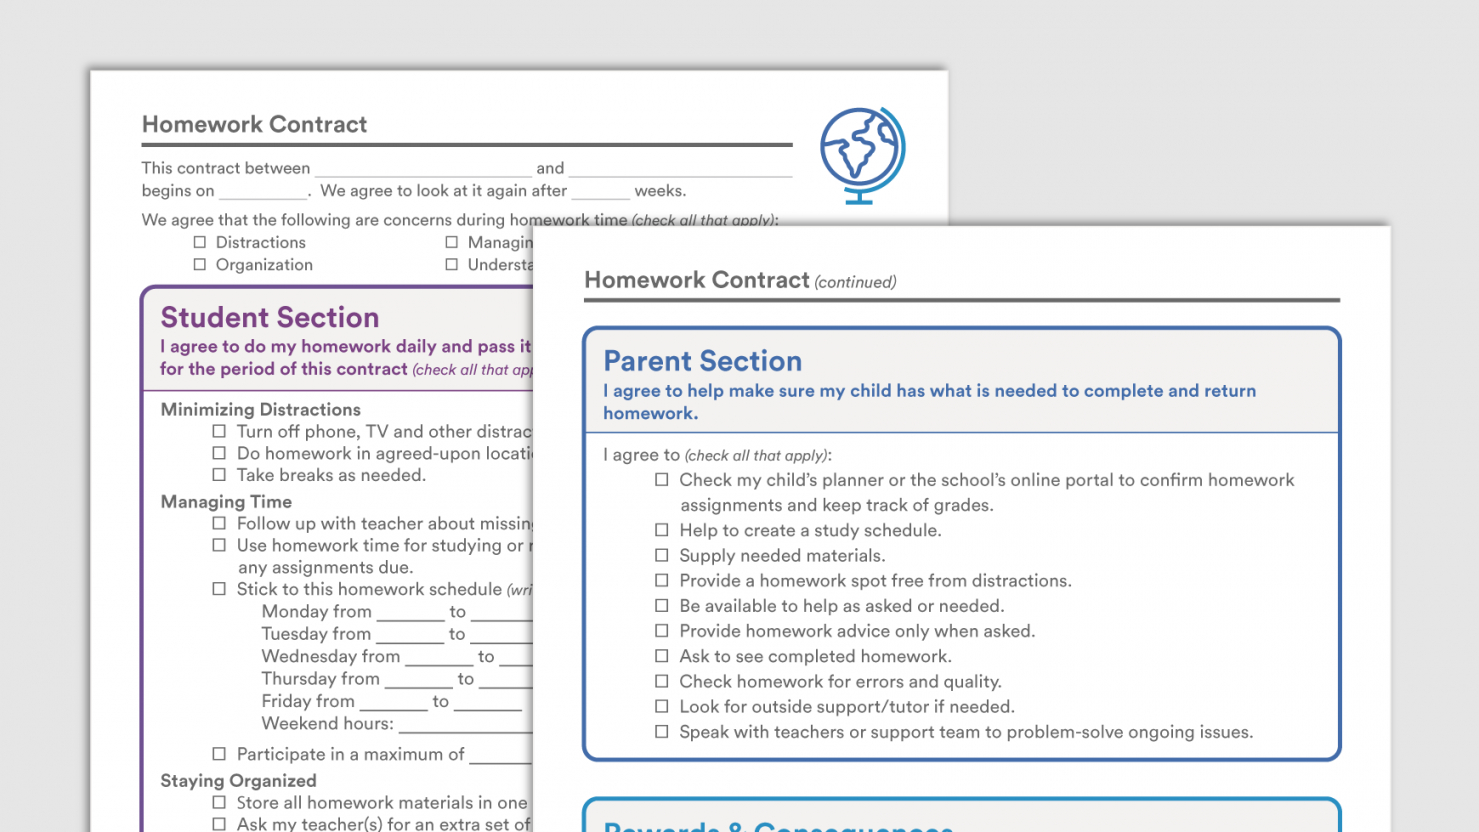 This Is The Sample Homework Contracts Downloadable